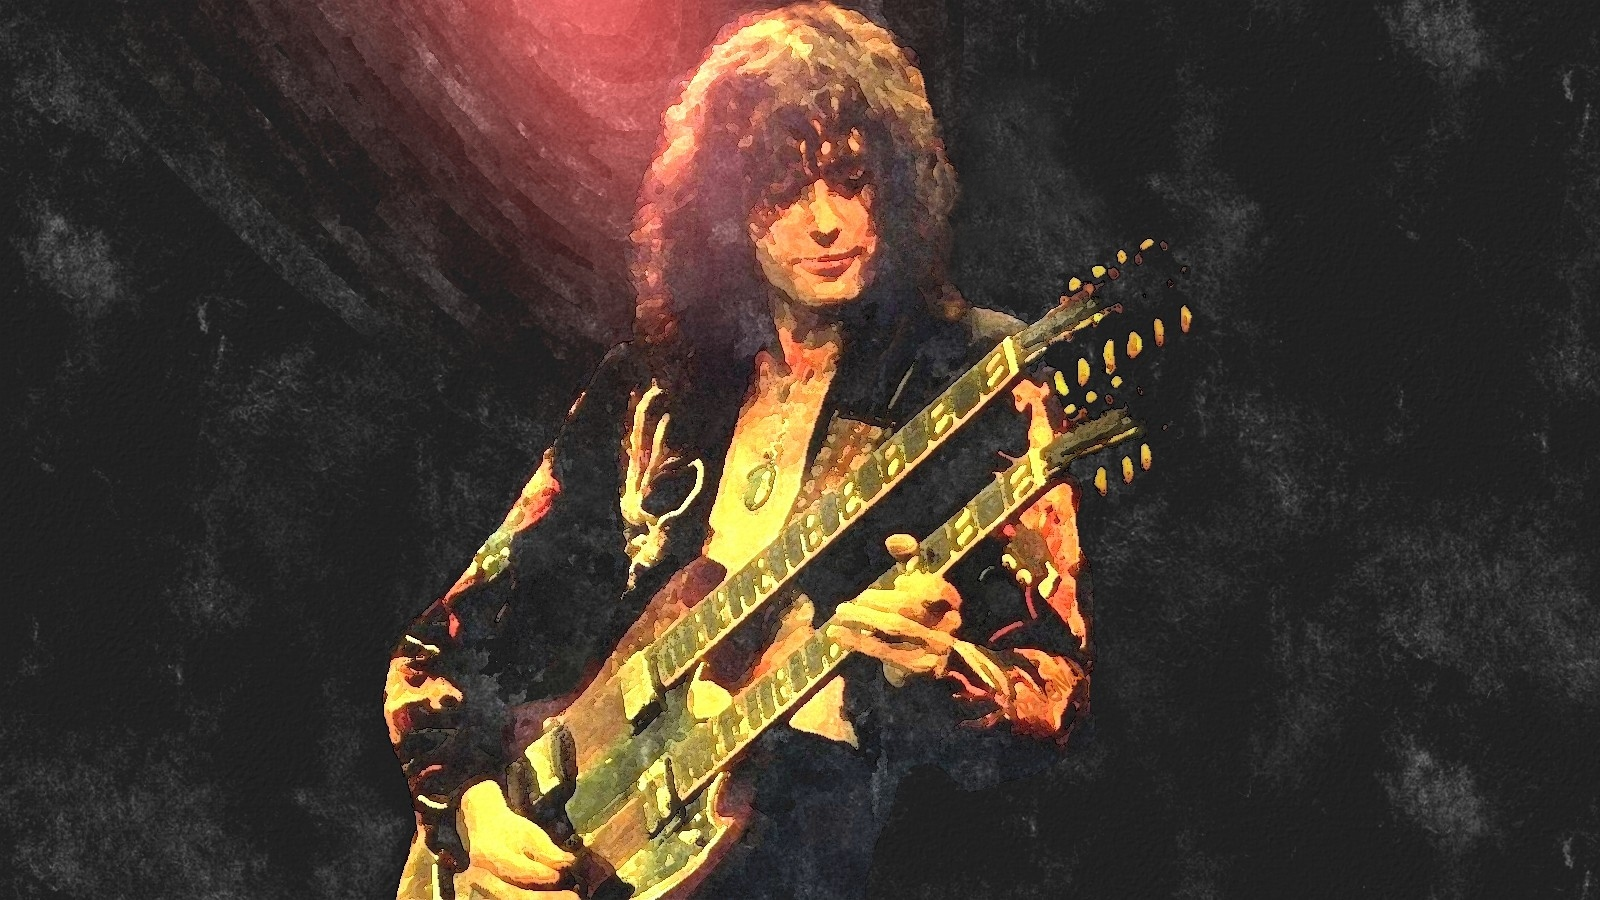 jimmy_page___light_and_shade_by_ravenval-d4lsmir.jpg